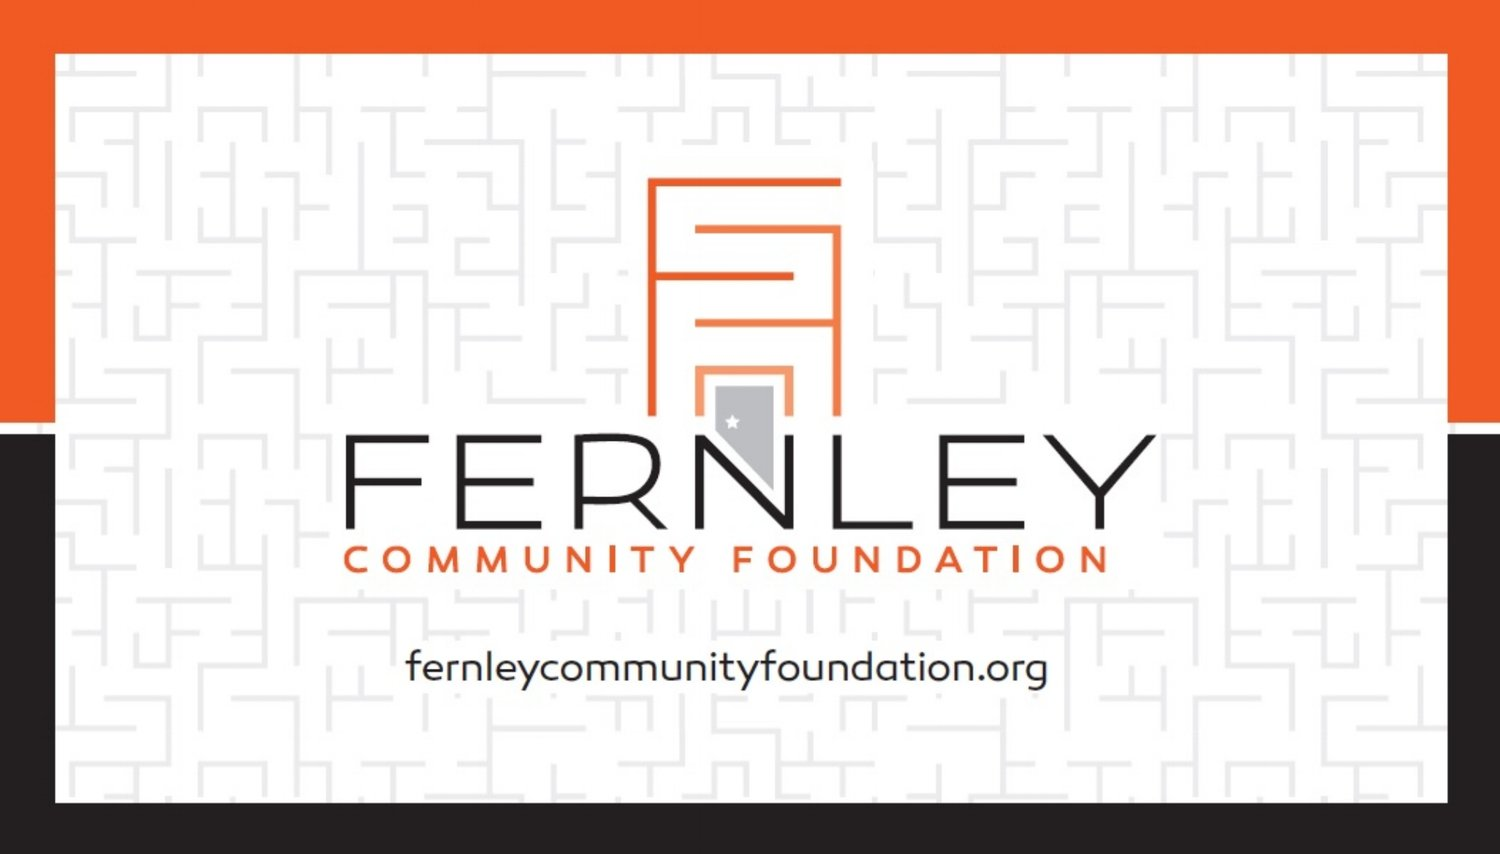 Fernley Community Foundation